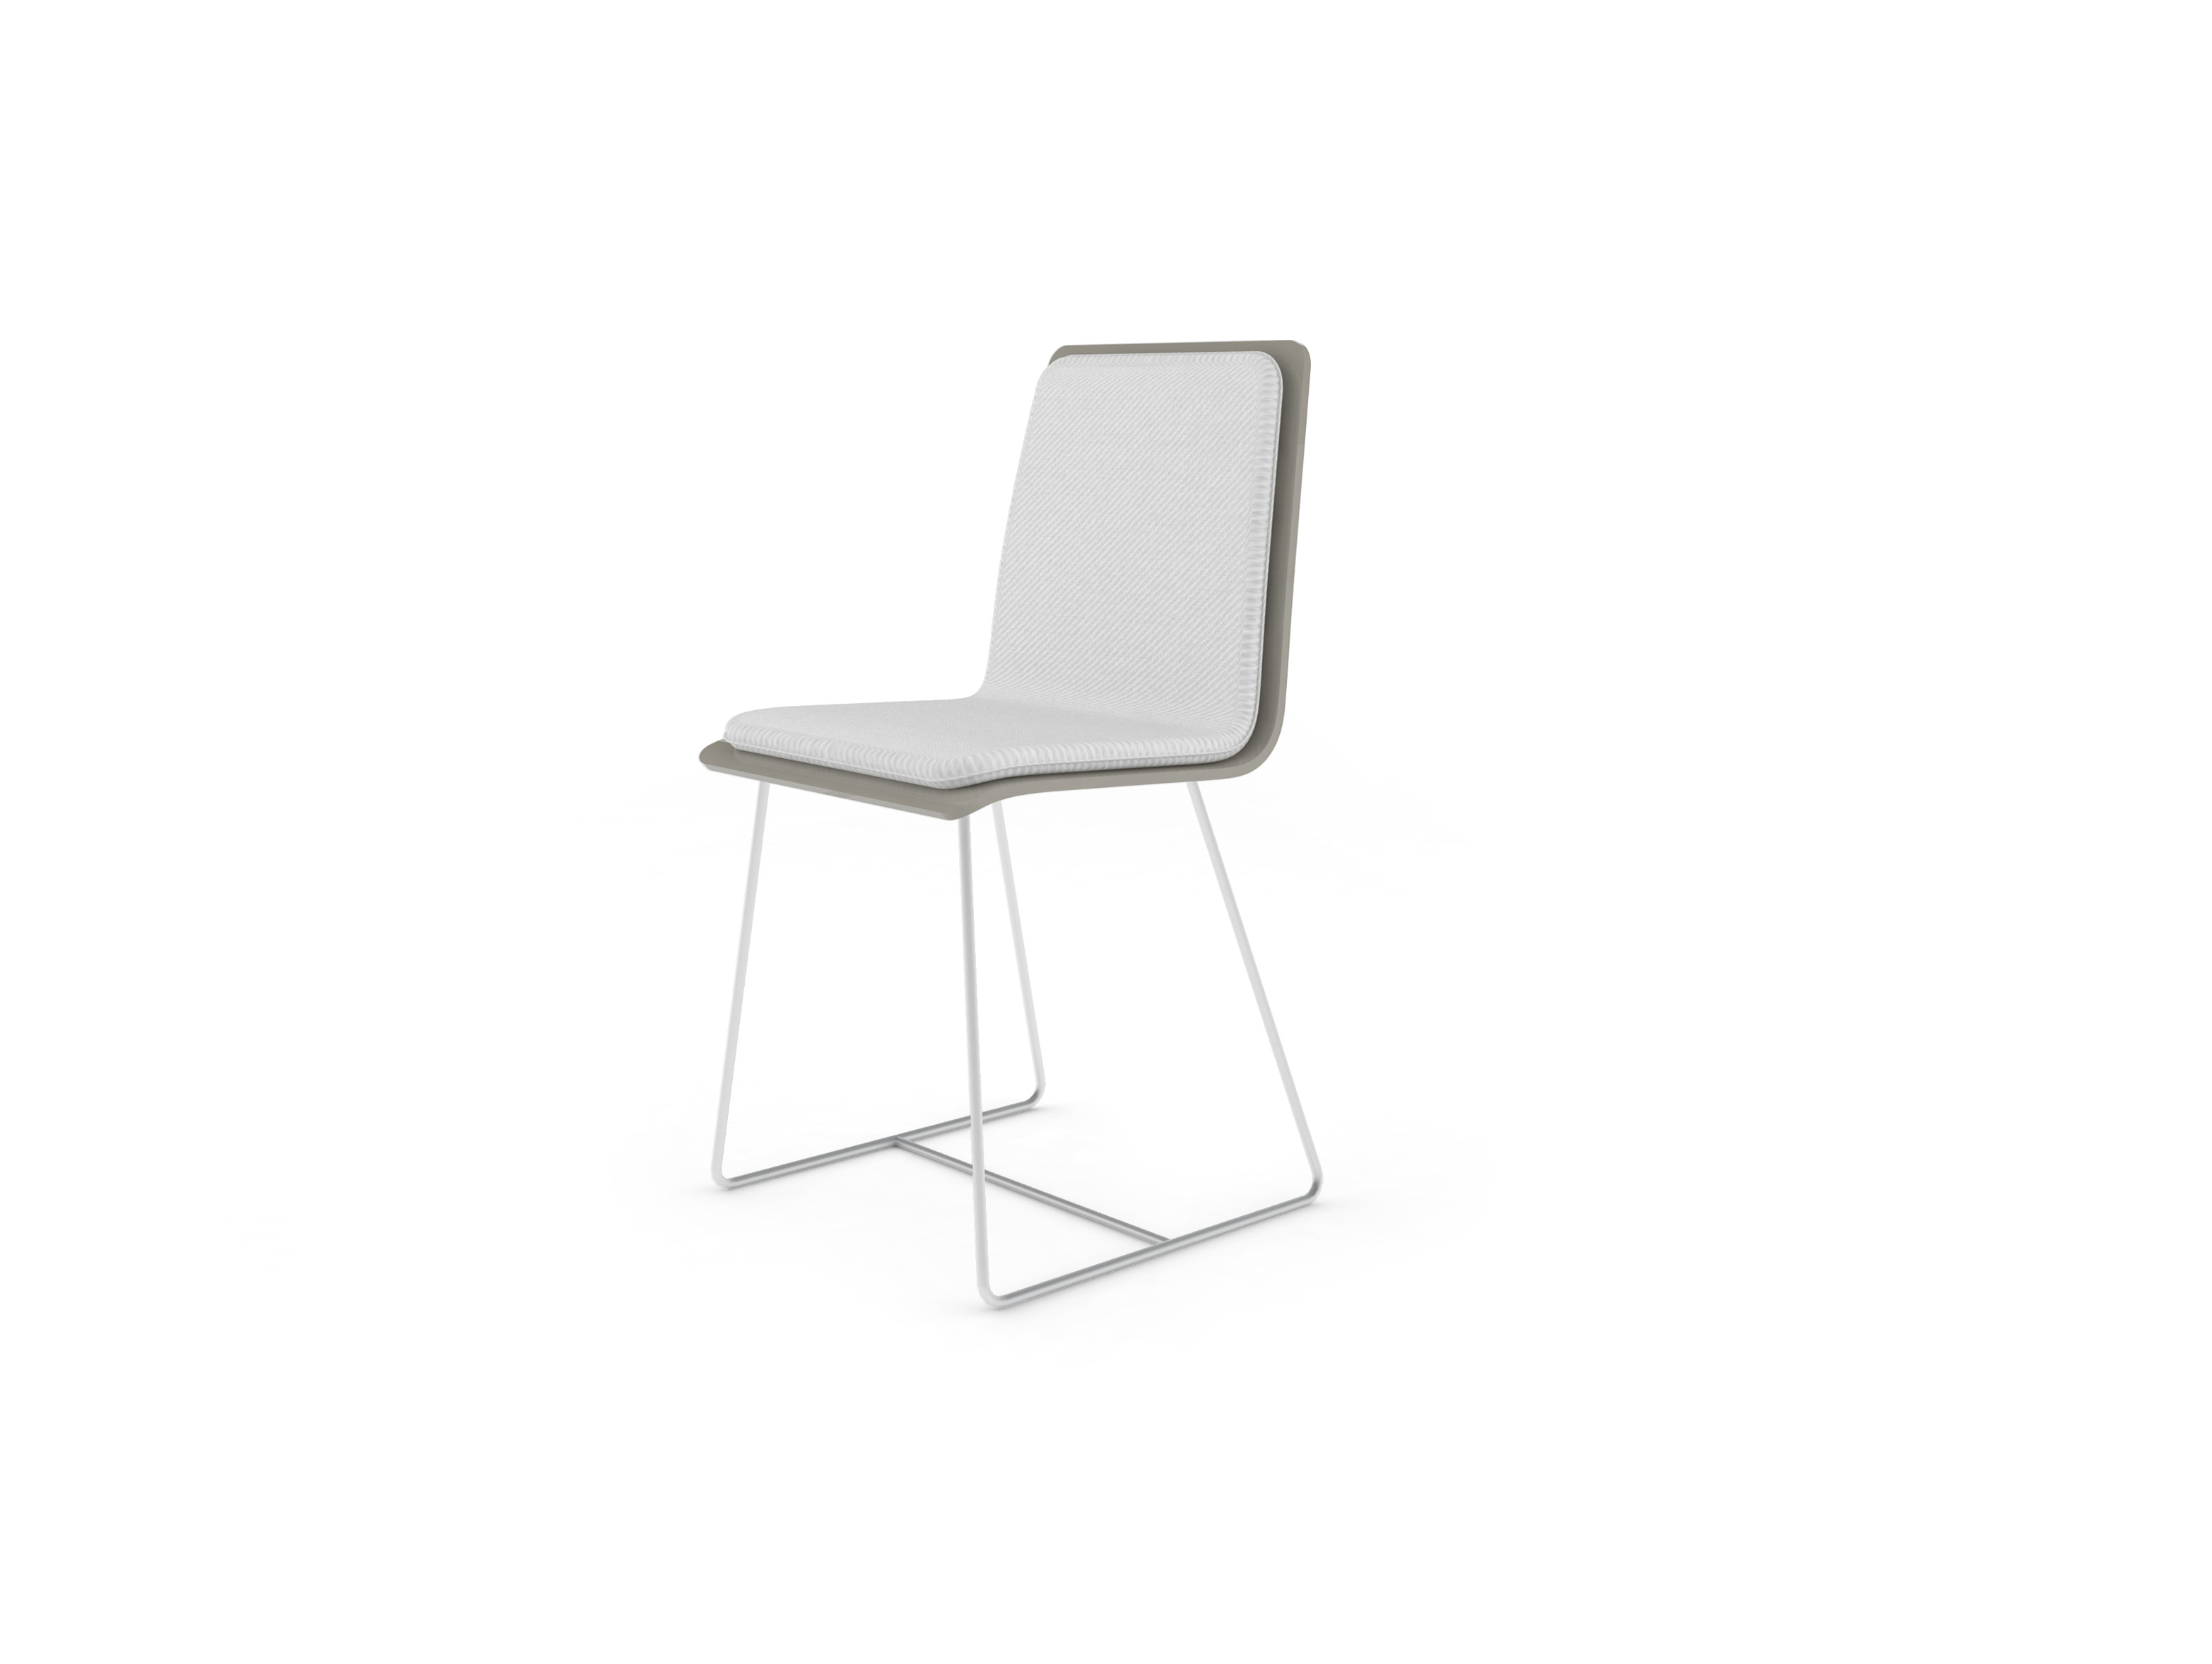 Chaise Bee outdoor PMMA gris perlé, coussin blanc